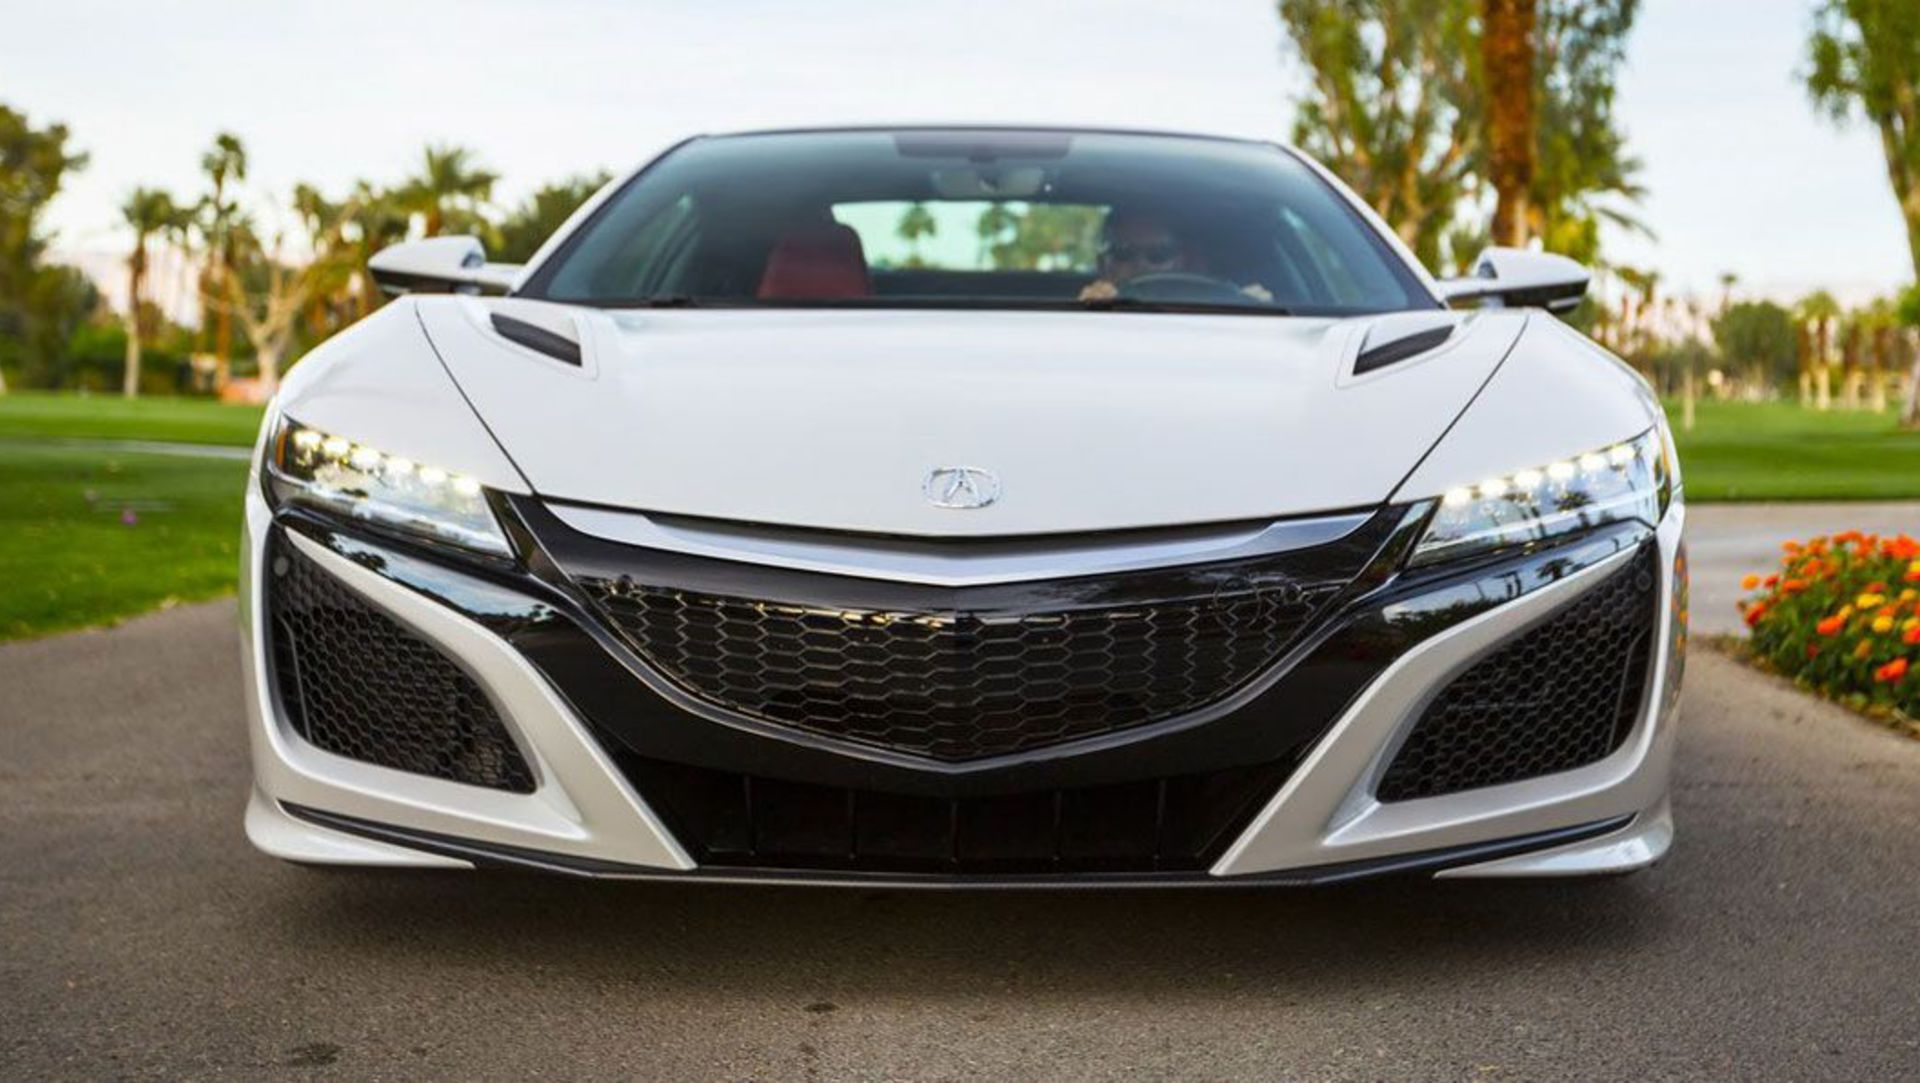 Honda Nsx Roadster Tipped For 2018 Launch Auto Moto Japan Bullet